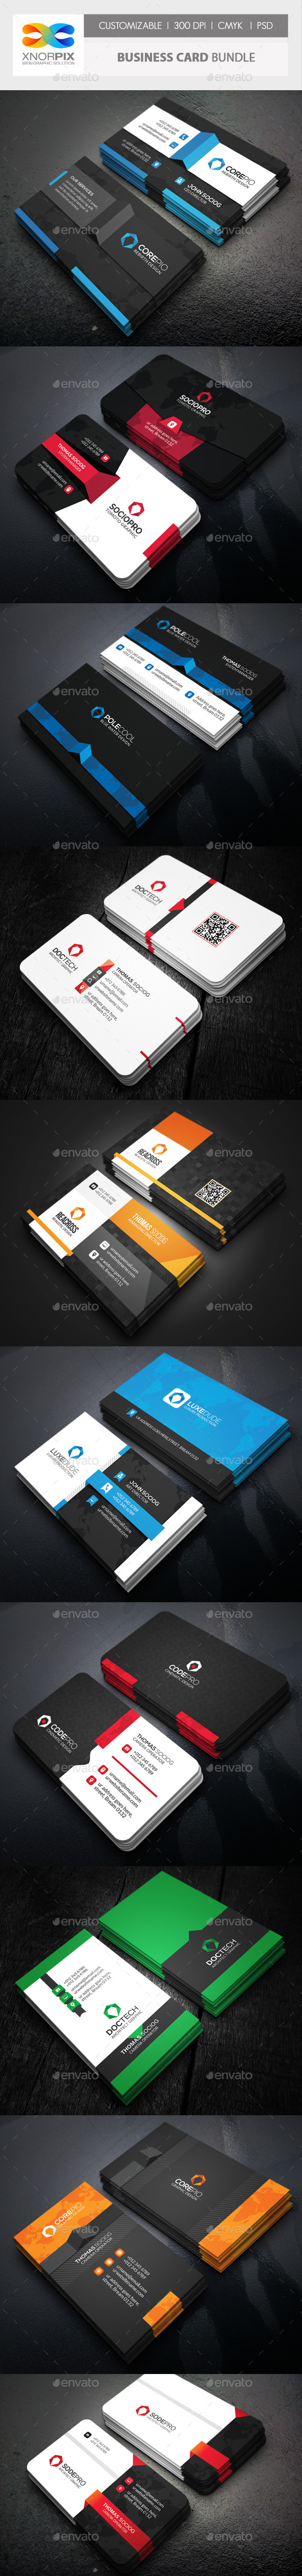 GraphicRiver Business Card Bundle 10 in 1 11938145